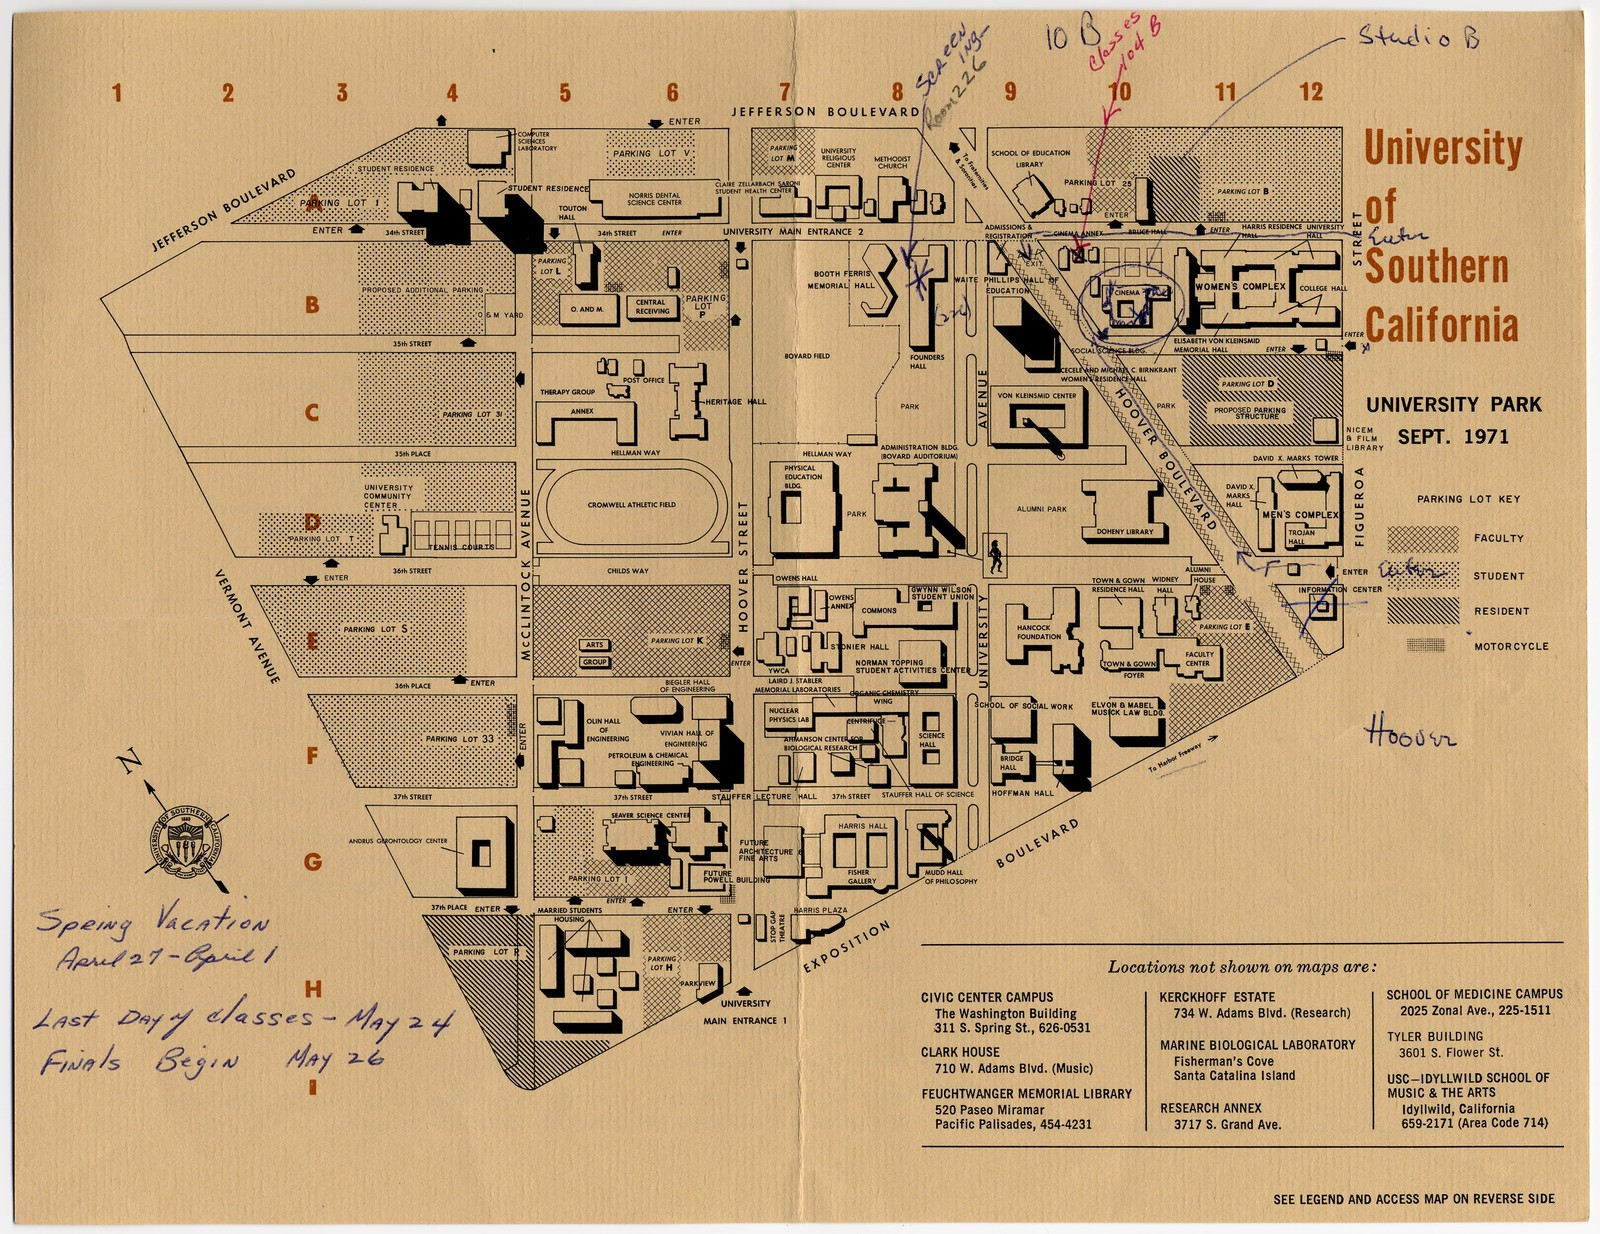 Osage Warrior Ambulance Wiring Diagram Https Media View Of The New York Quarantine Staten Island University Southern California Campus Map With Handwritten Indications For 1600